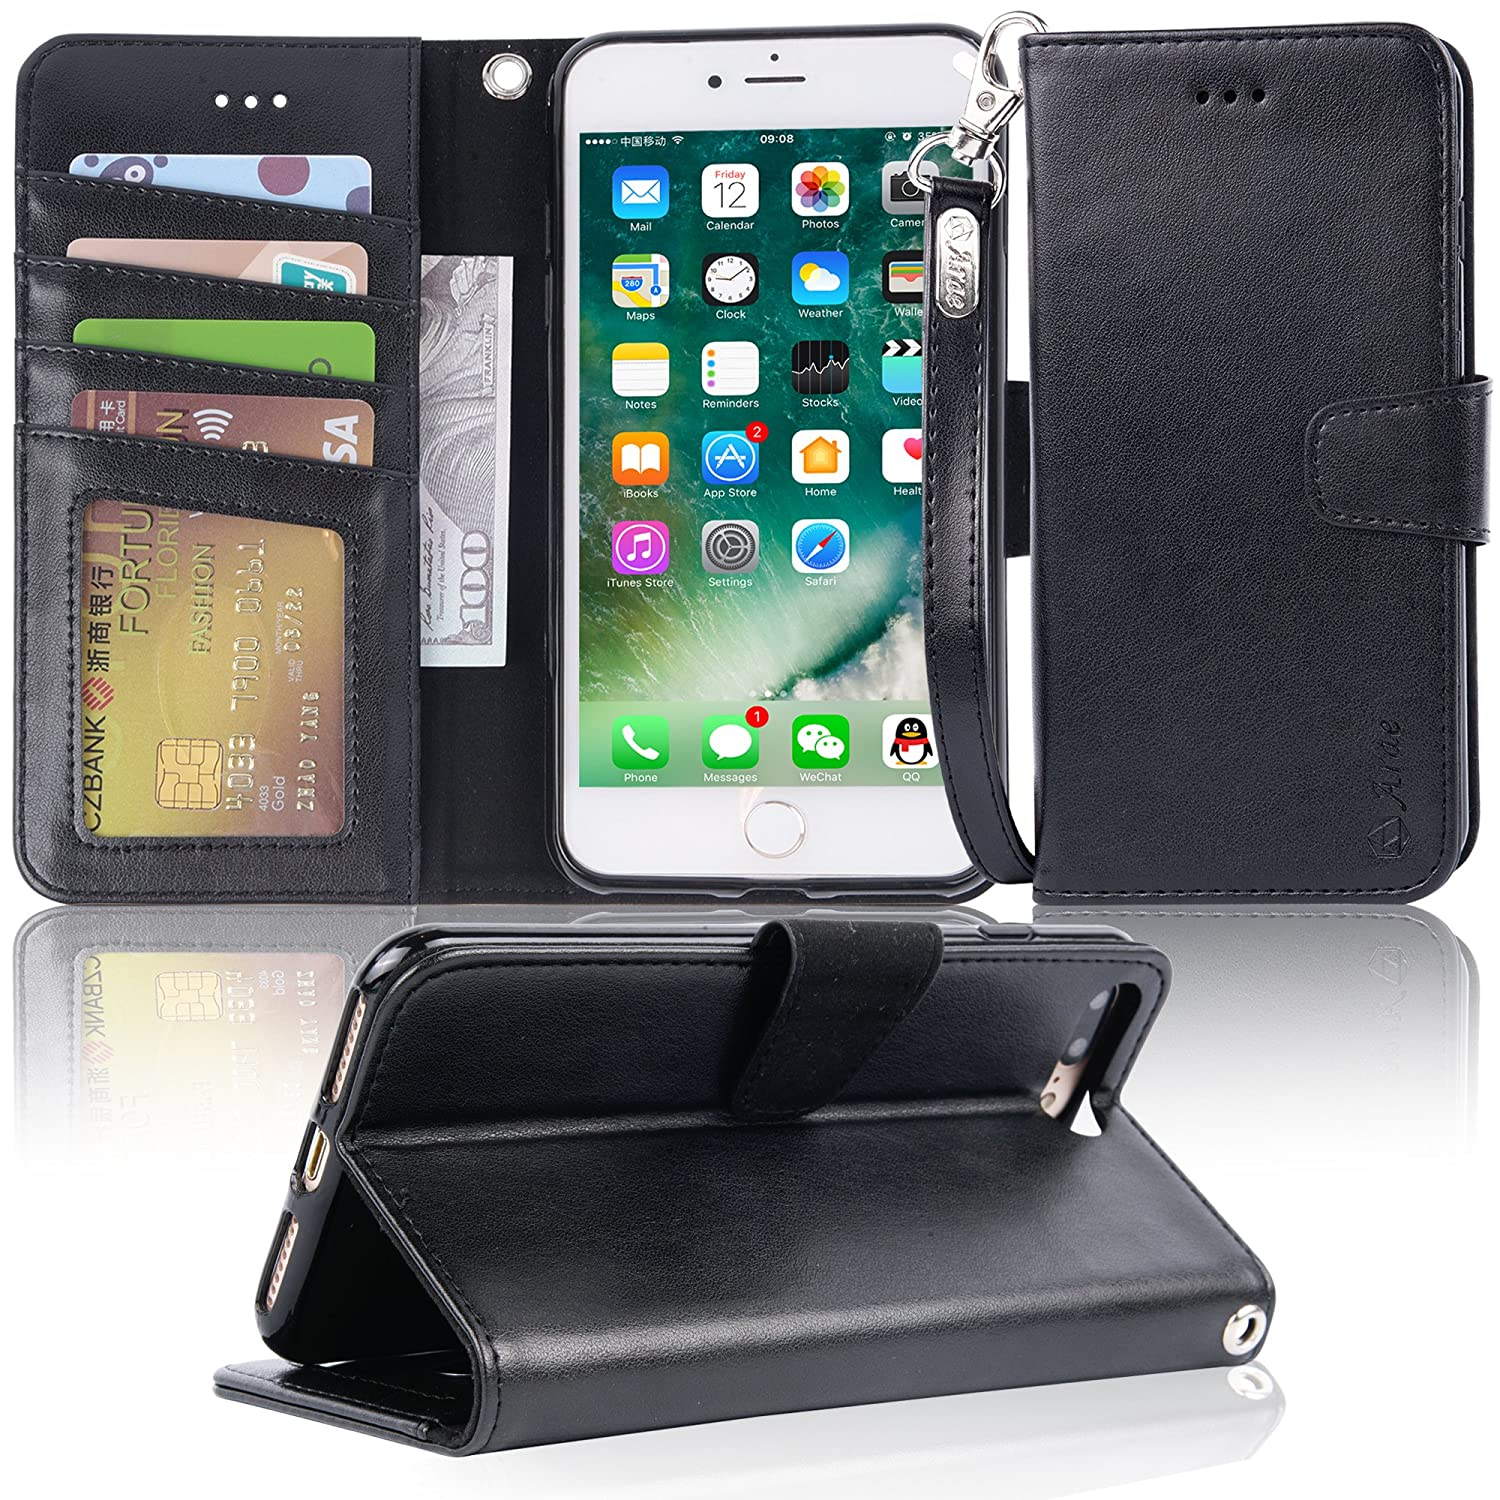 Arae Case for iPhone 7 Plus/iPhone 8 Plus, Premium PU Leather Wallet Case with Kickstand and Flip Cover for iPhone 7 Plus (2016) / iPhone 8 Plus (2017) 5.5